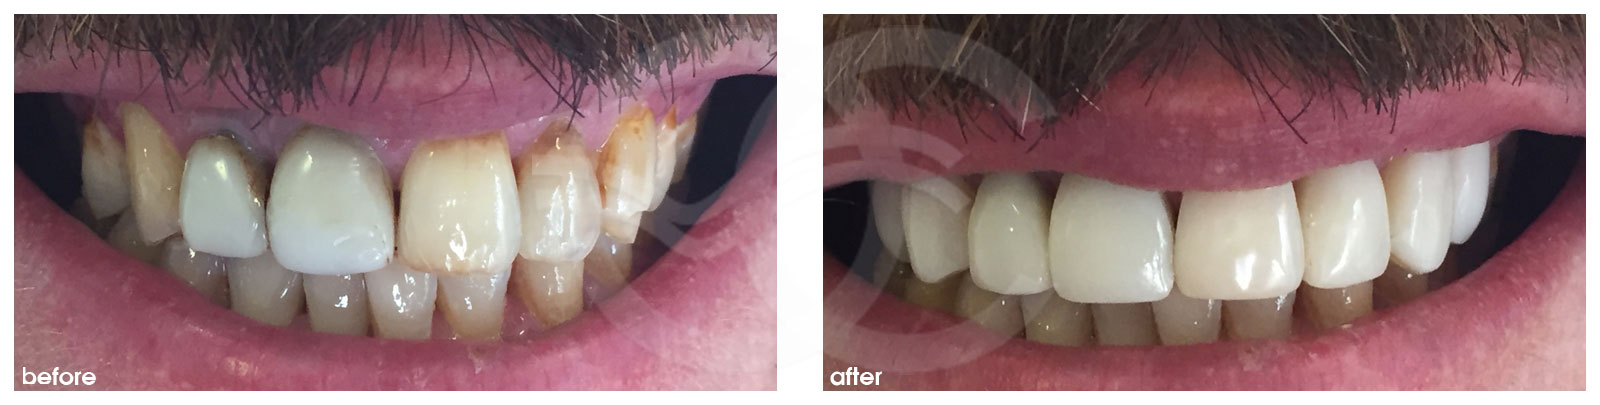 Cosmetic Dentistry Before After Difference in color of teeth solved. Photo frontal Ocean Clinic Marbella Spain